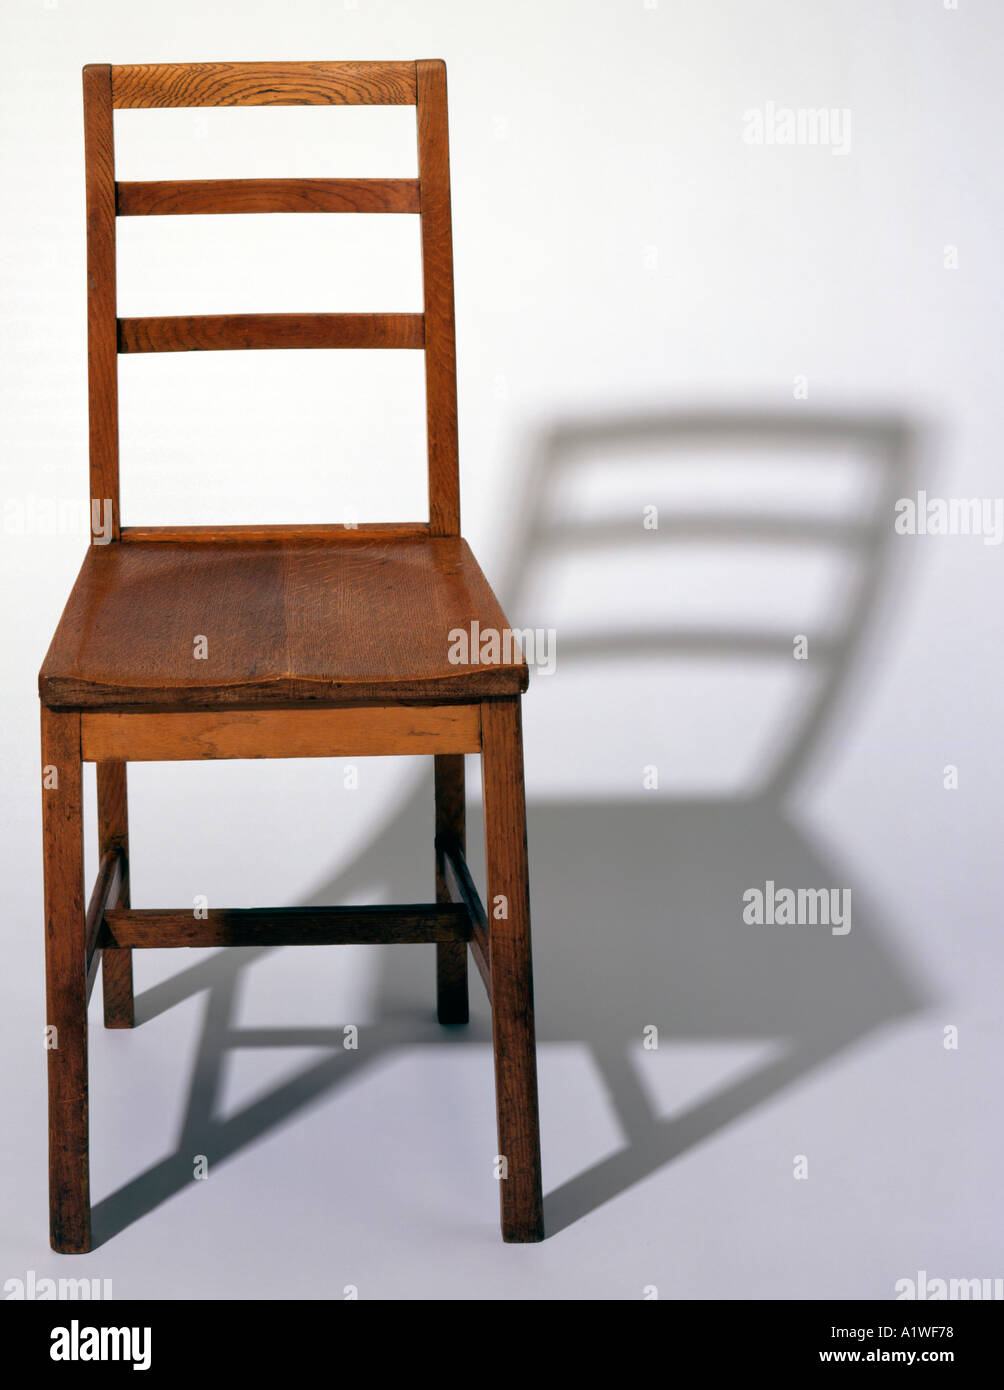 Alter Holzstuhl Schule Wooden Chair School Stockfotos Wooden Chair School Bilder Alamy